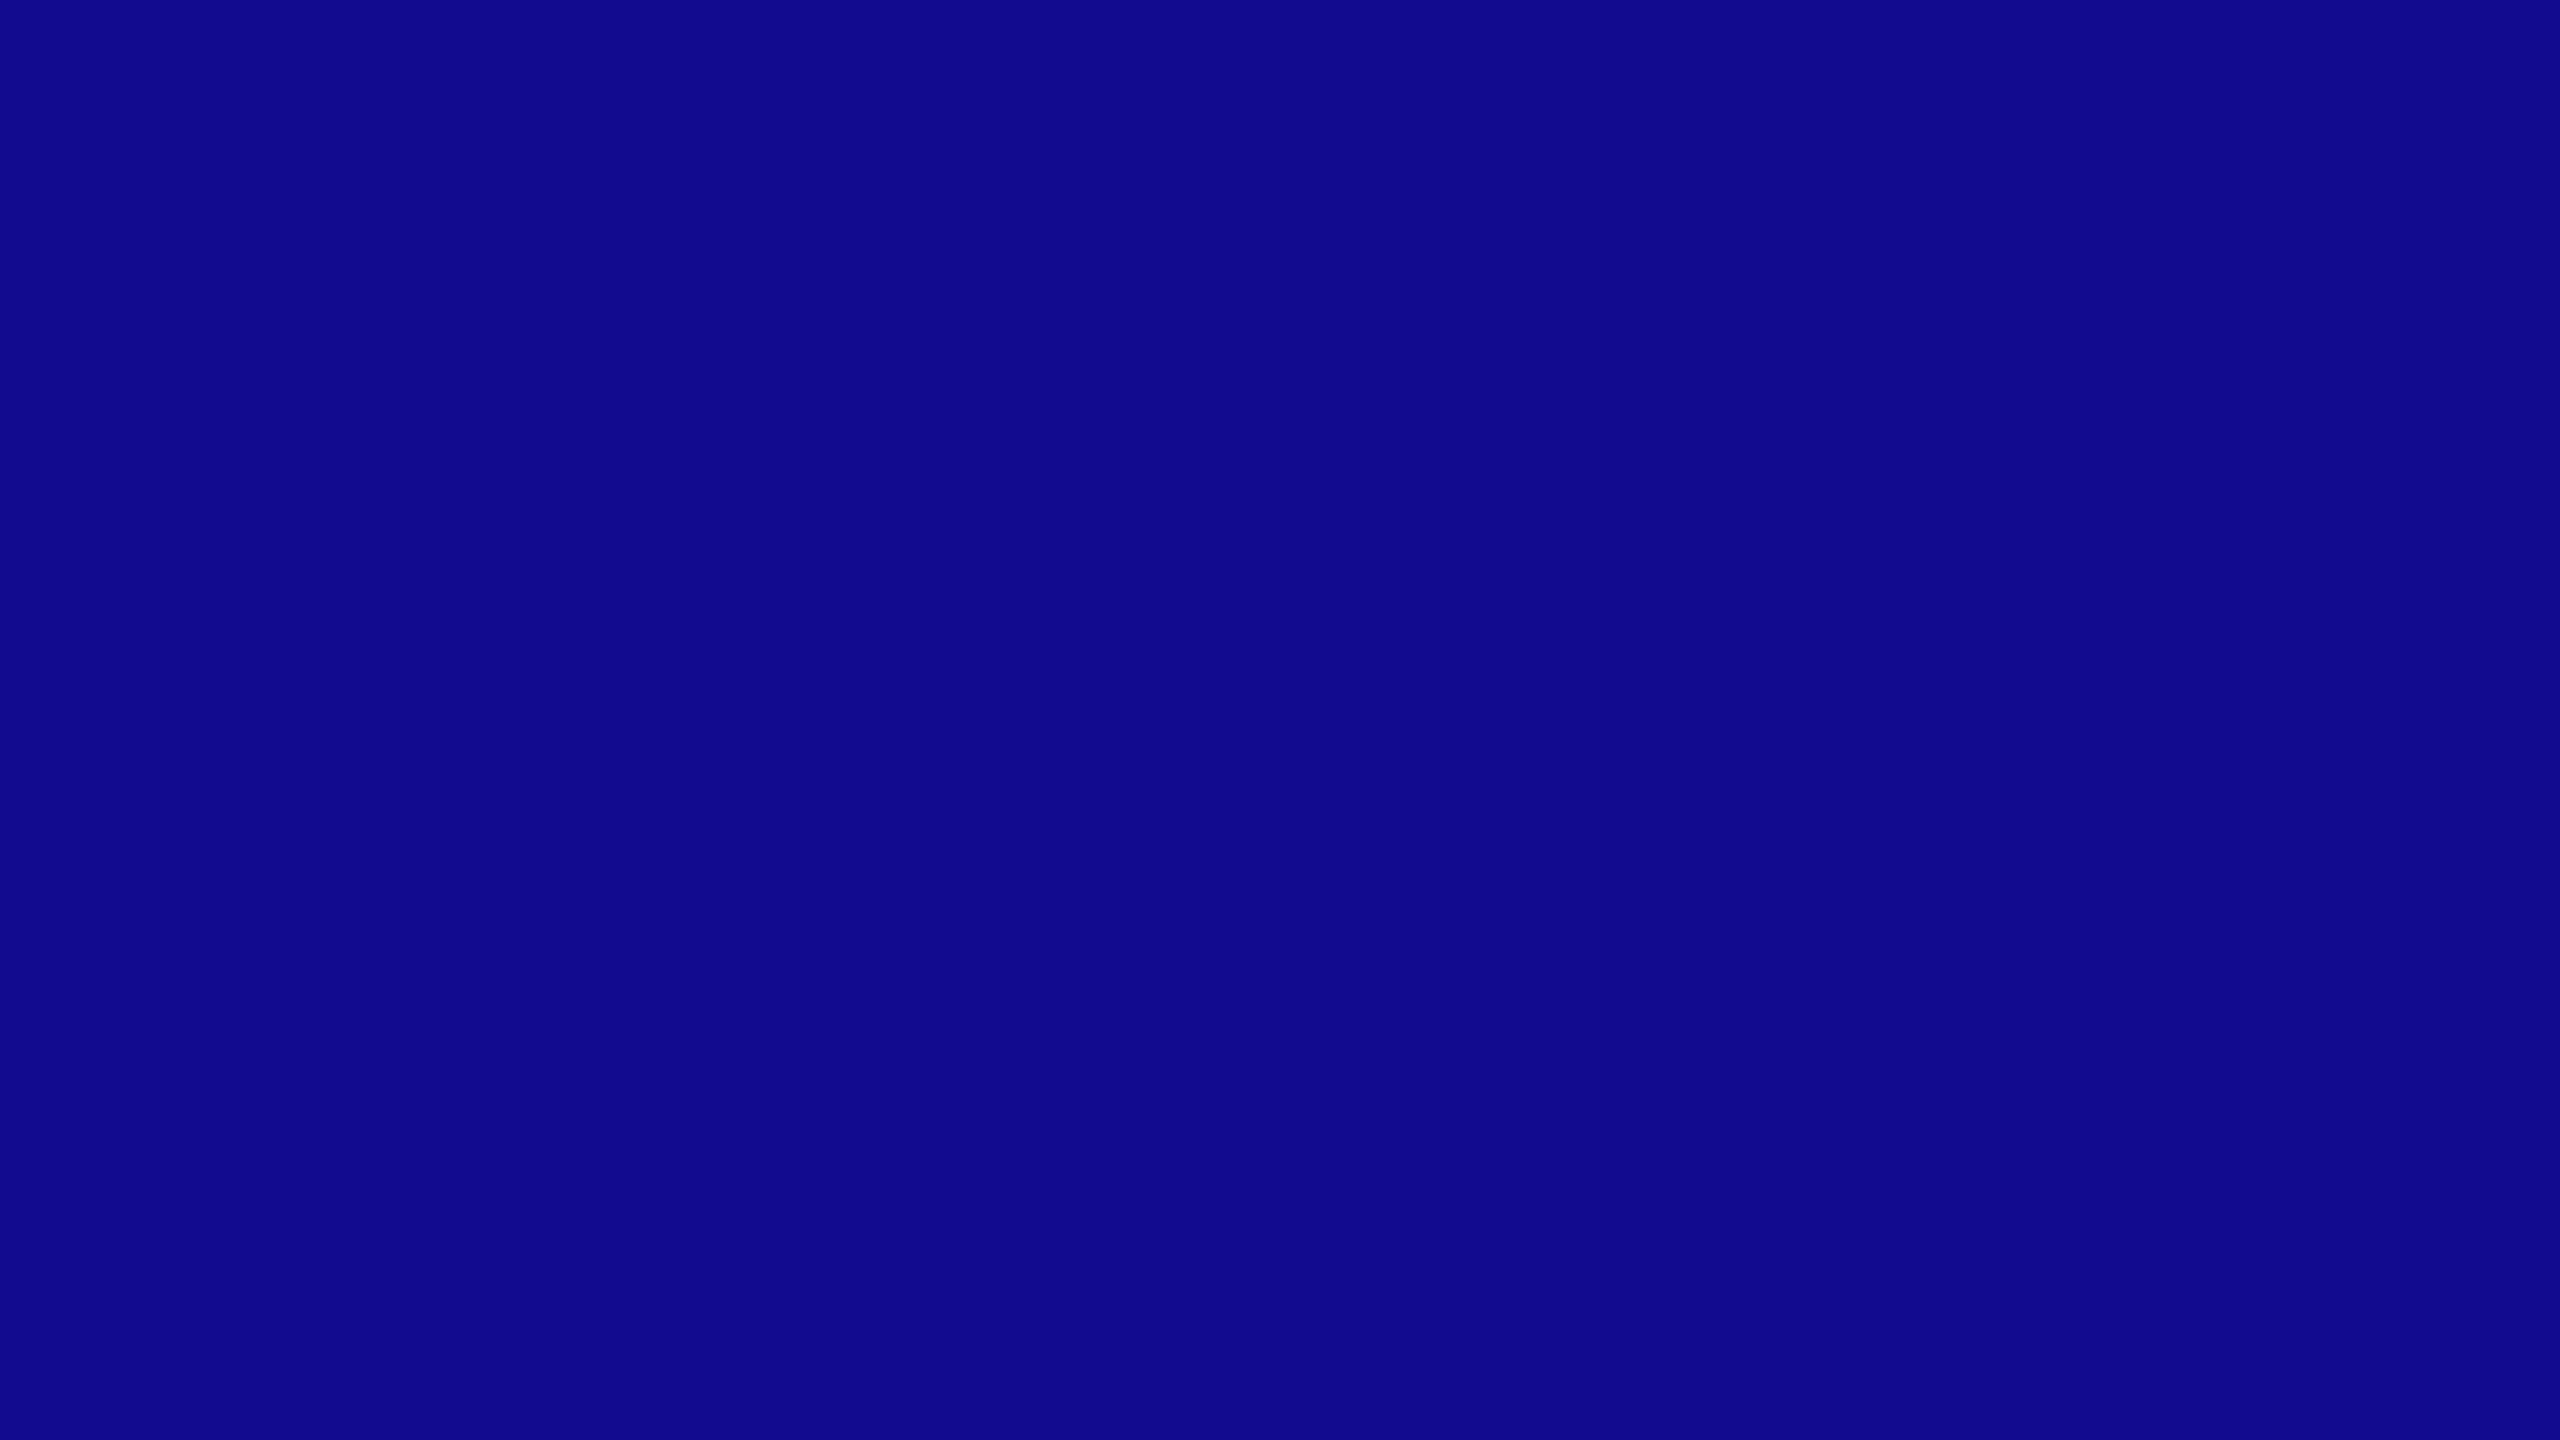 2560x1440 Ultramarine Solid Color Background